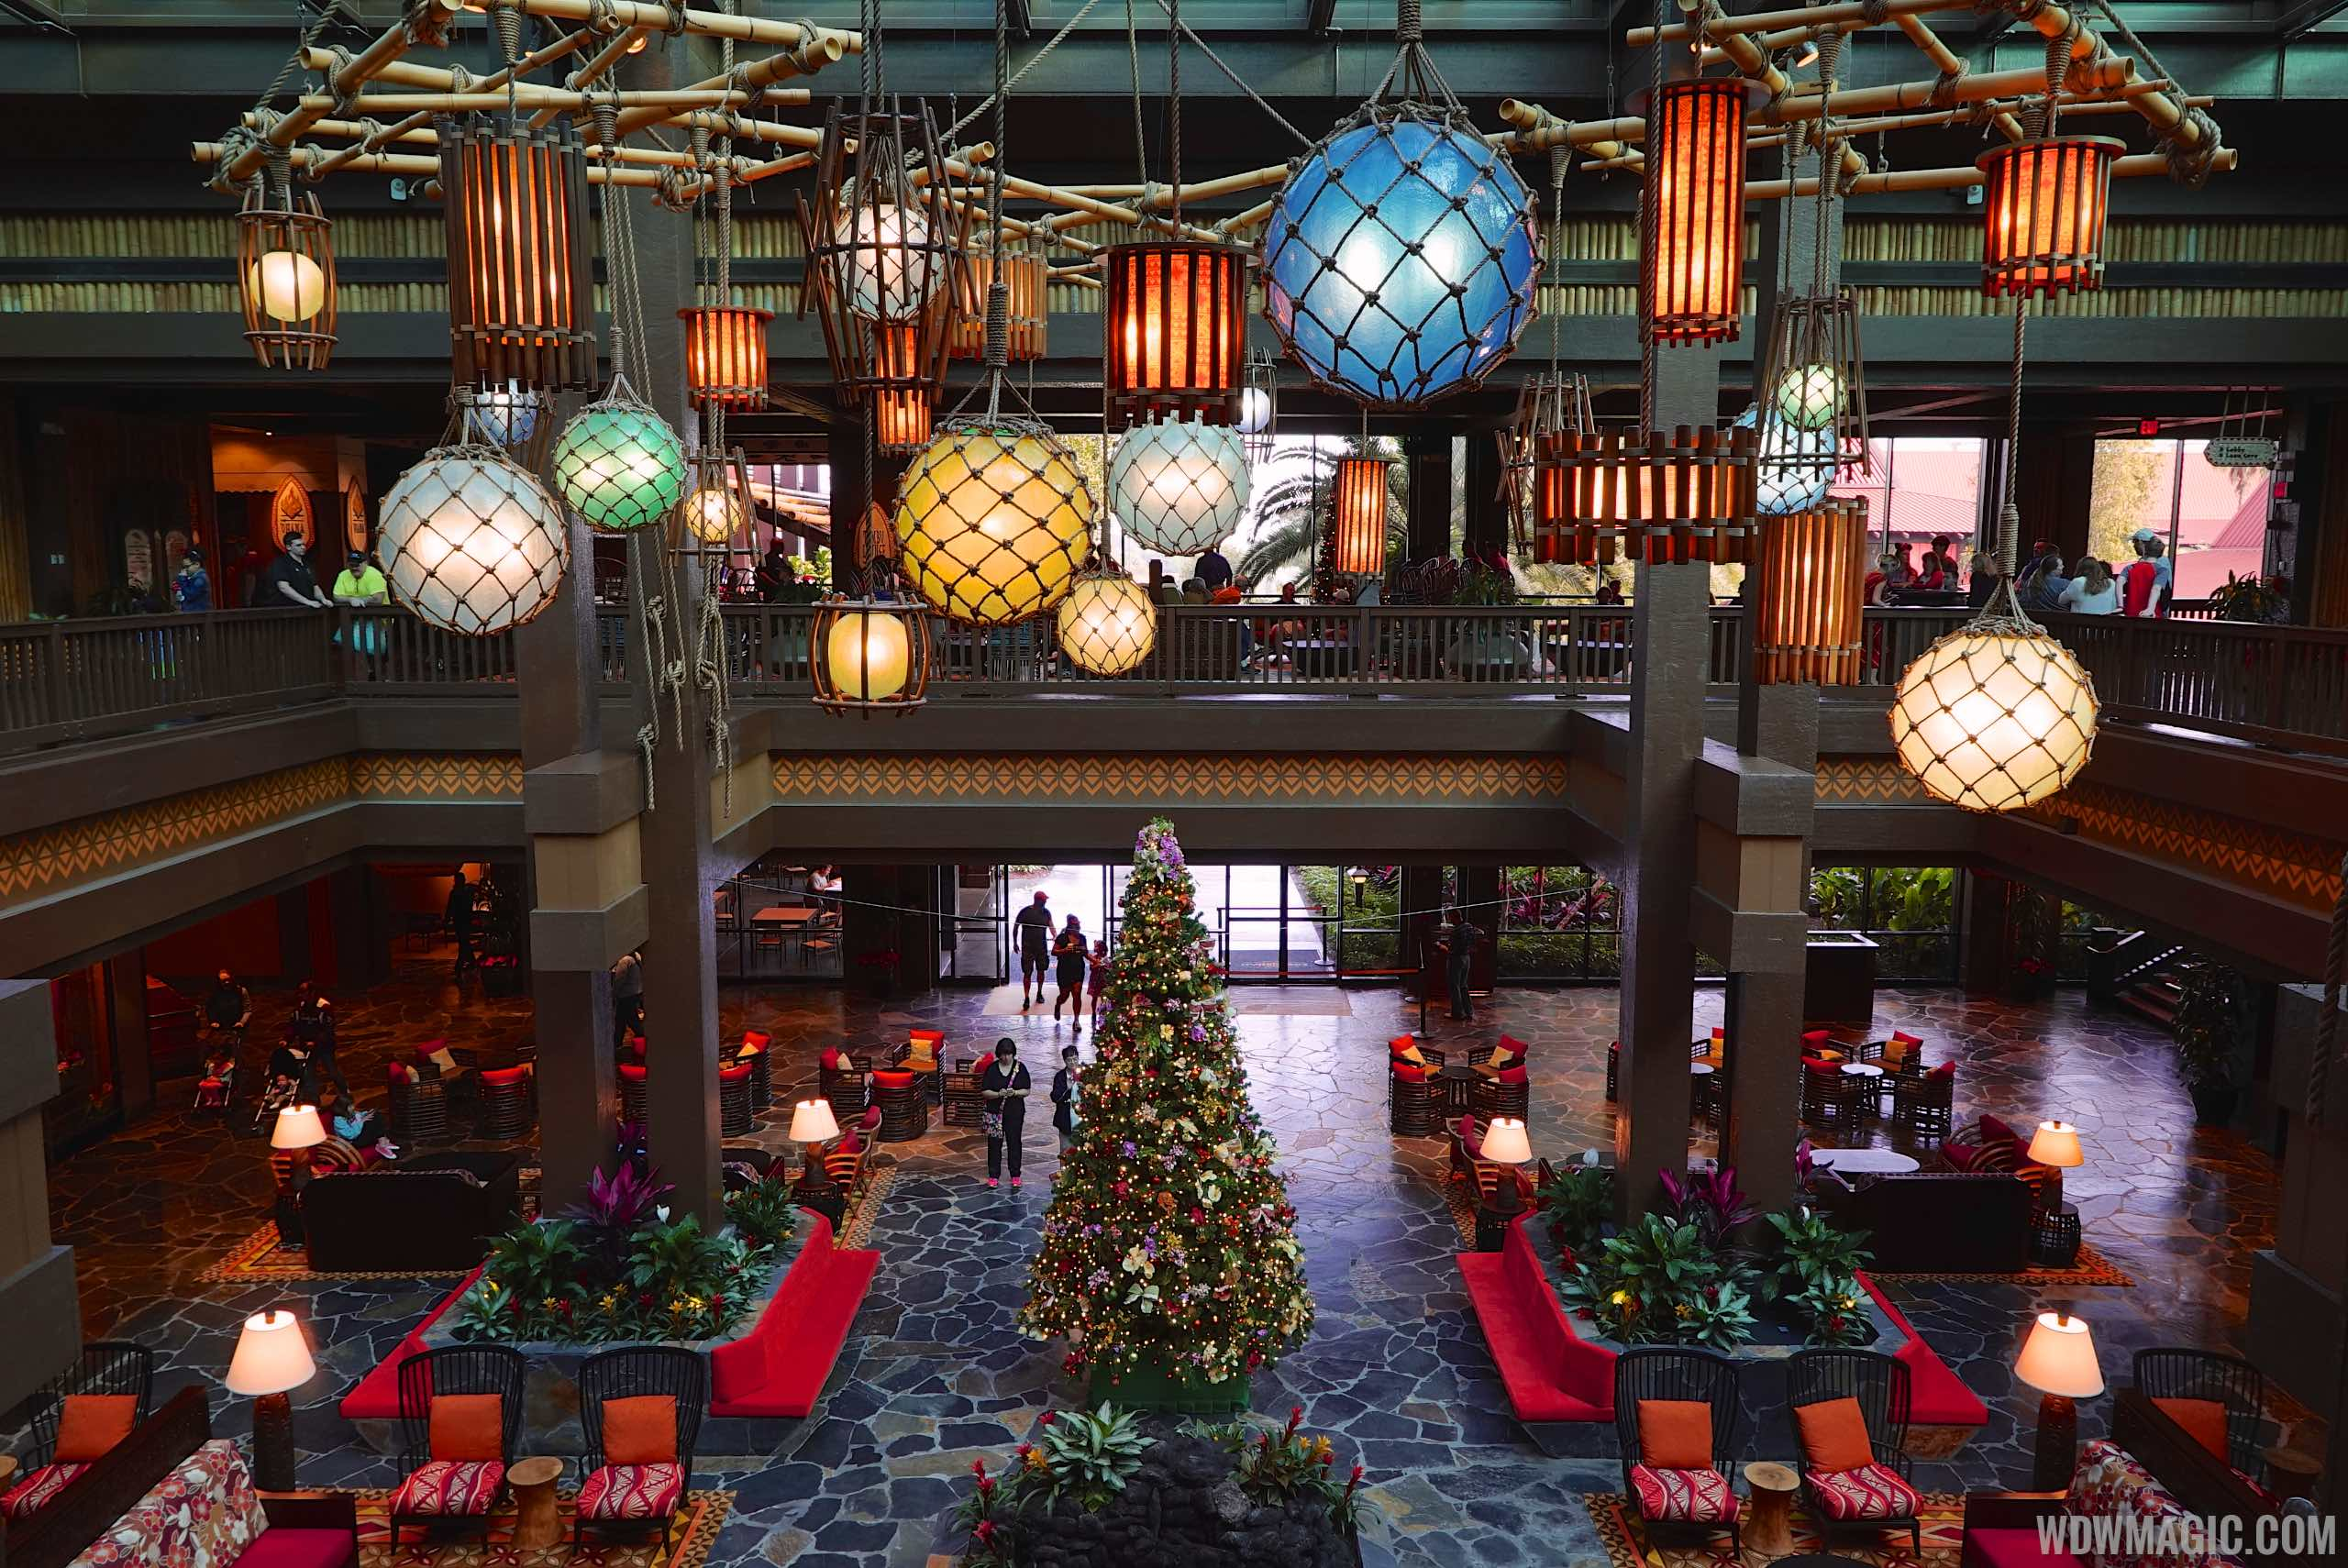 New Polynesian lobby from the second floor